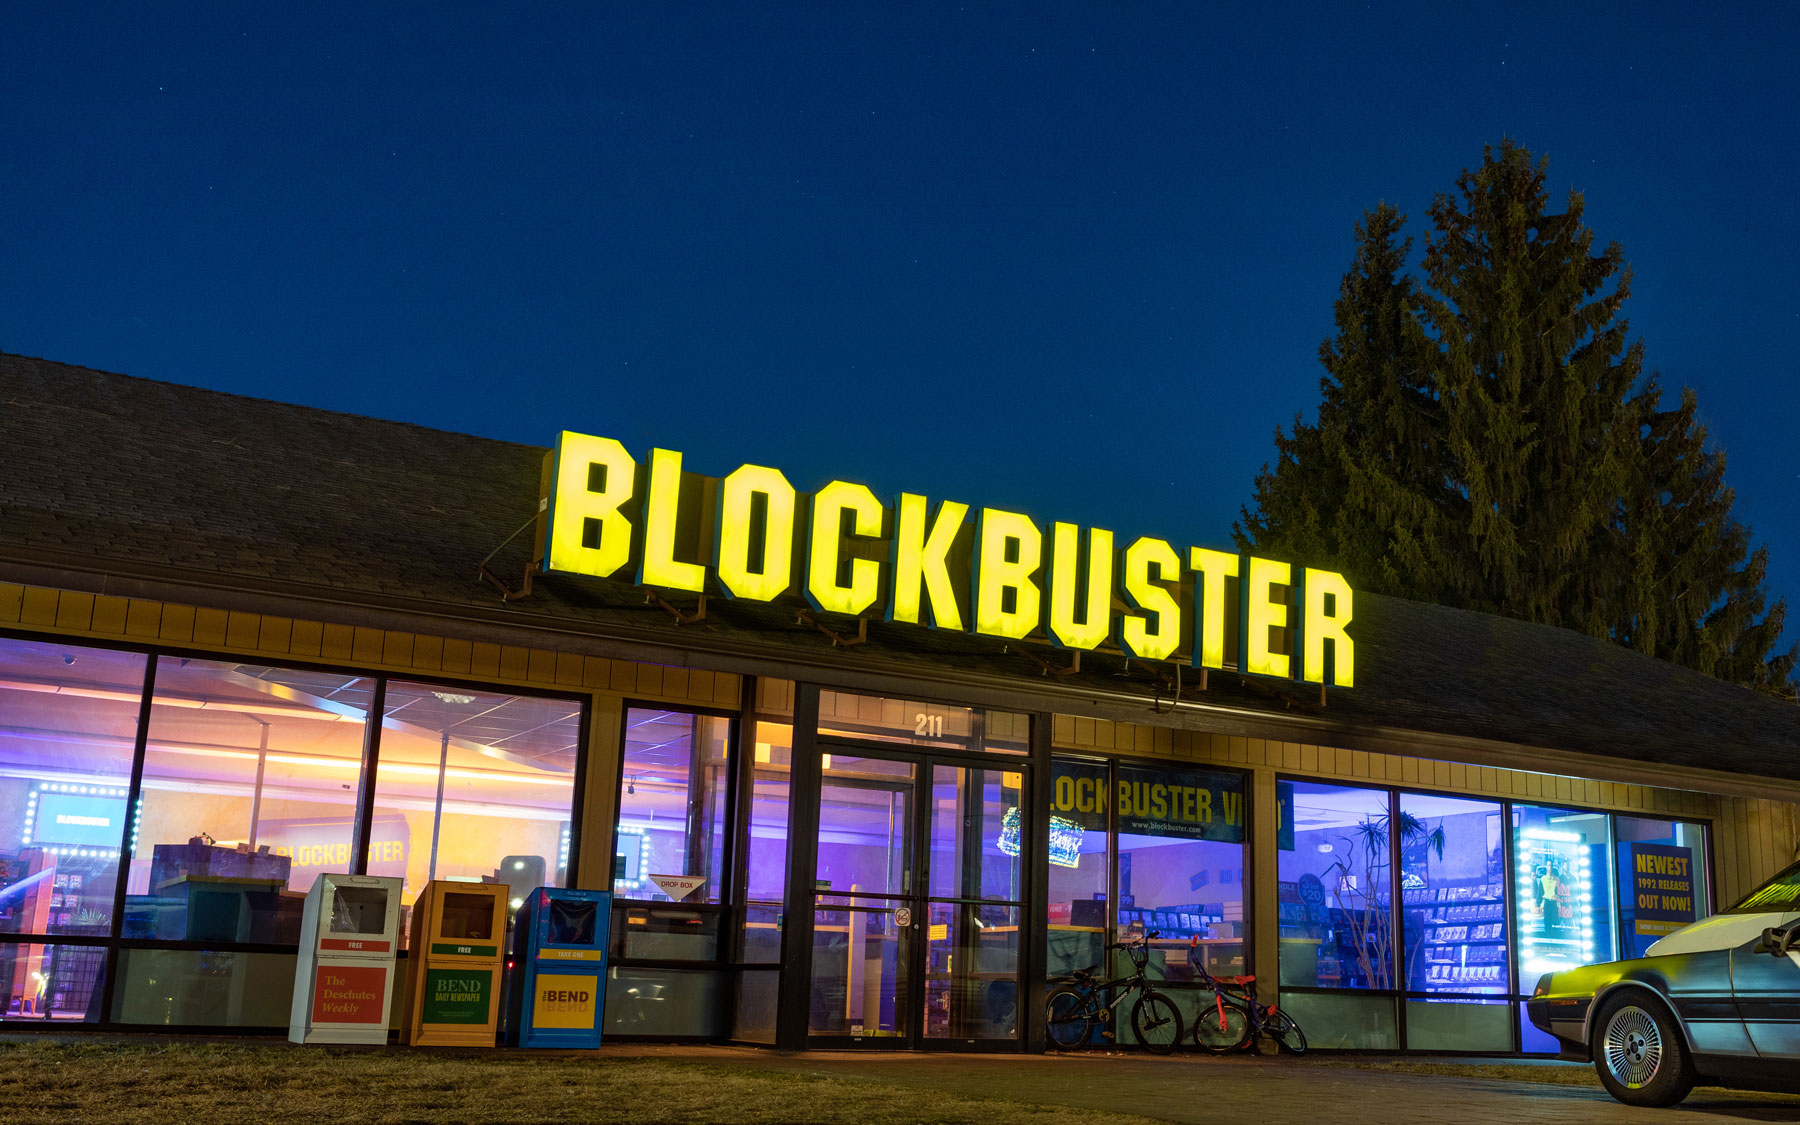 Exterior of Blockbuster